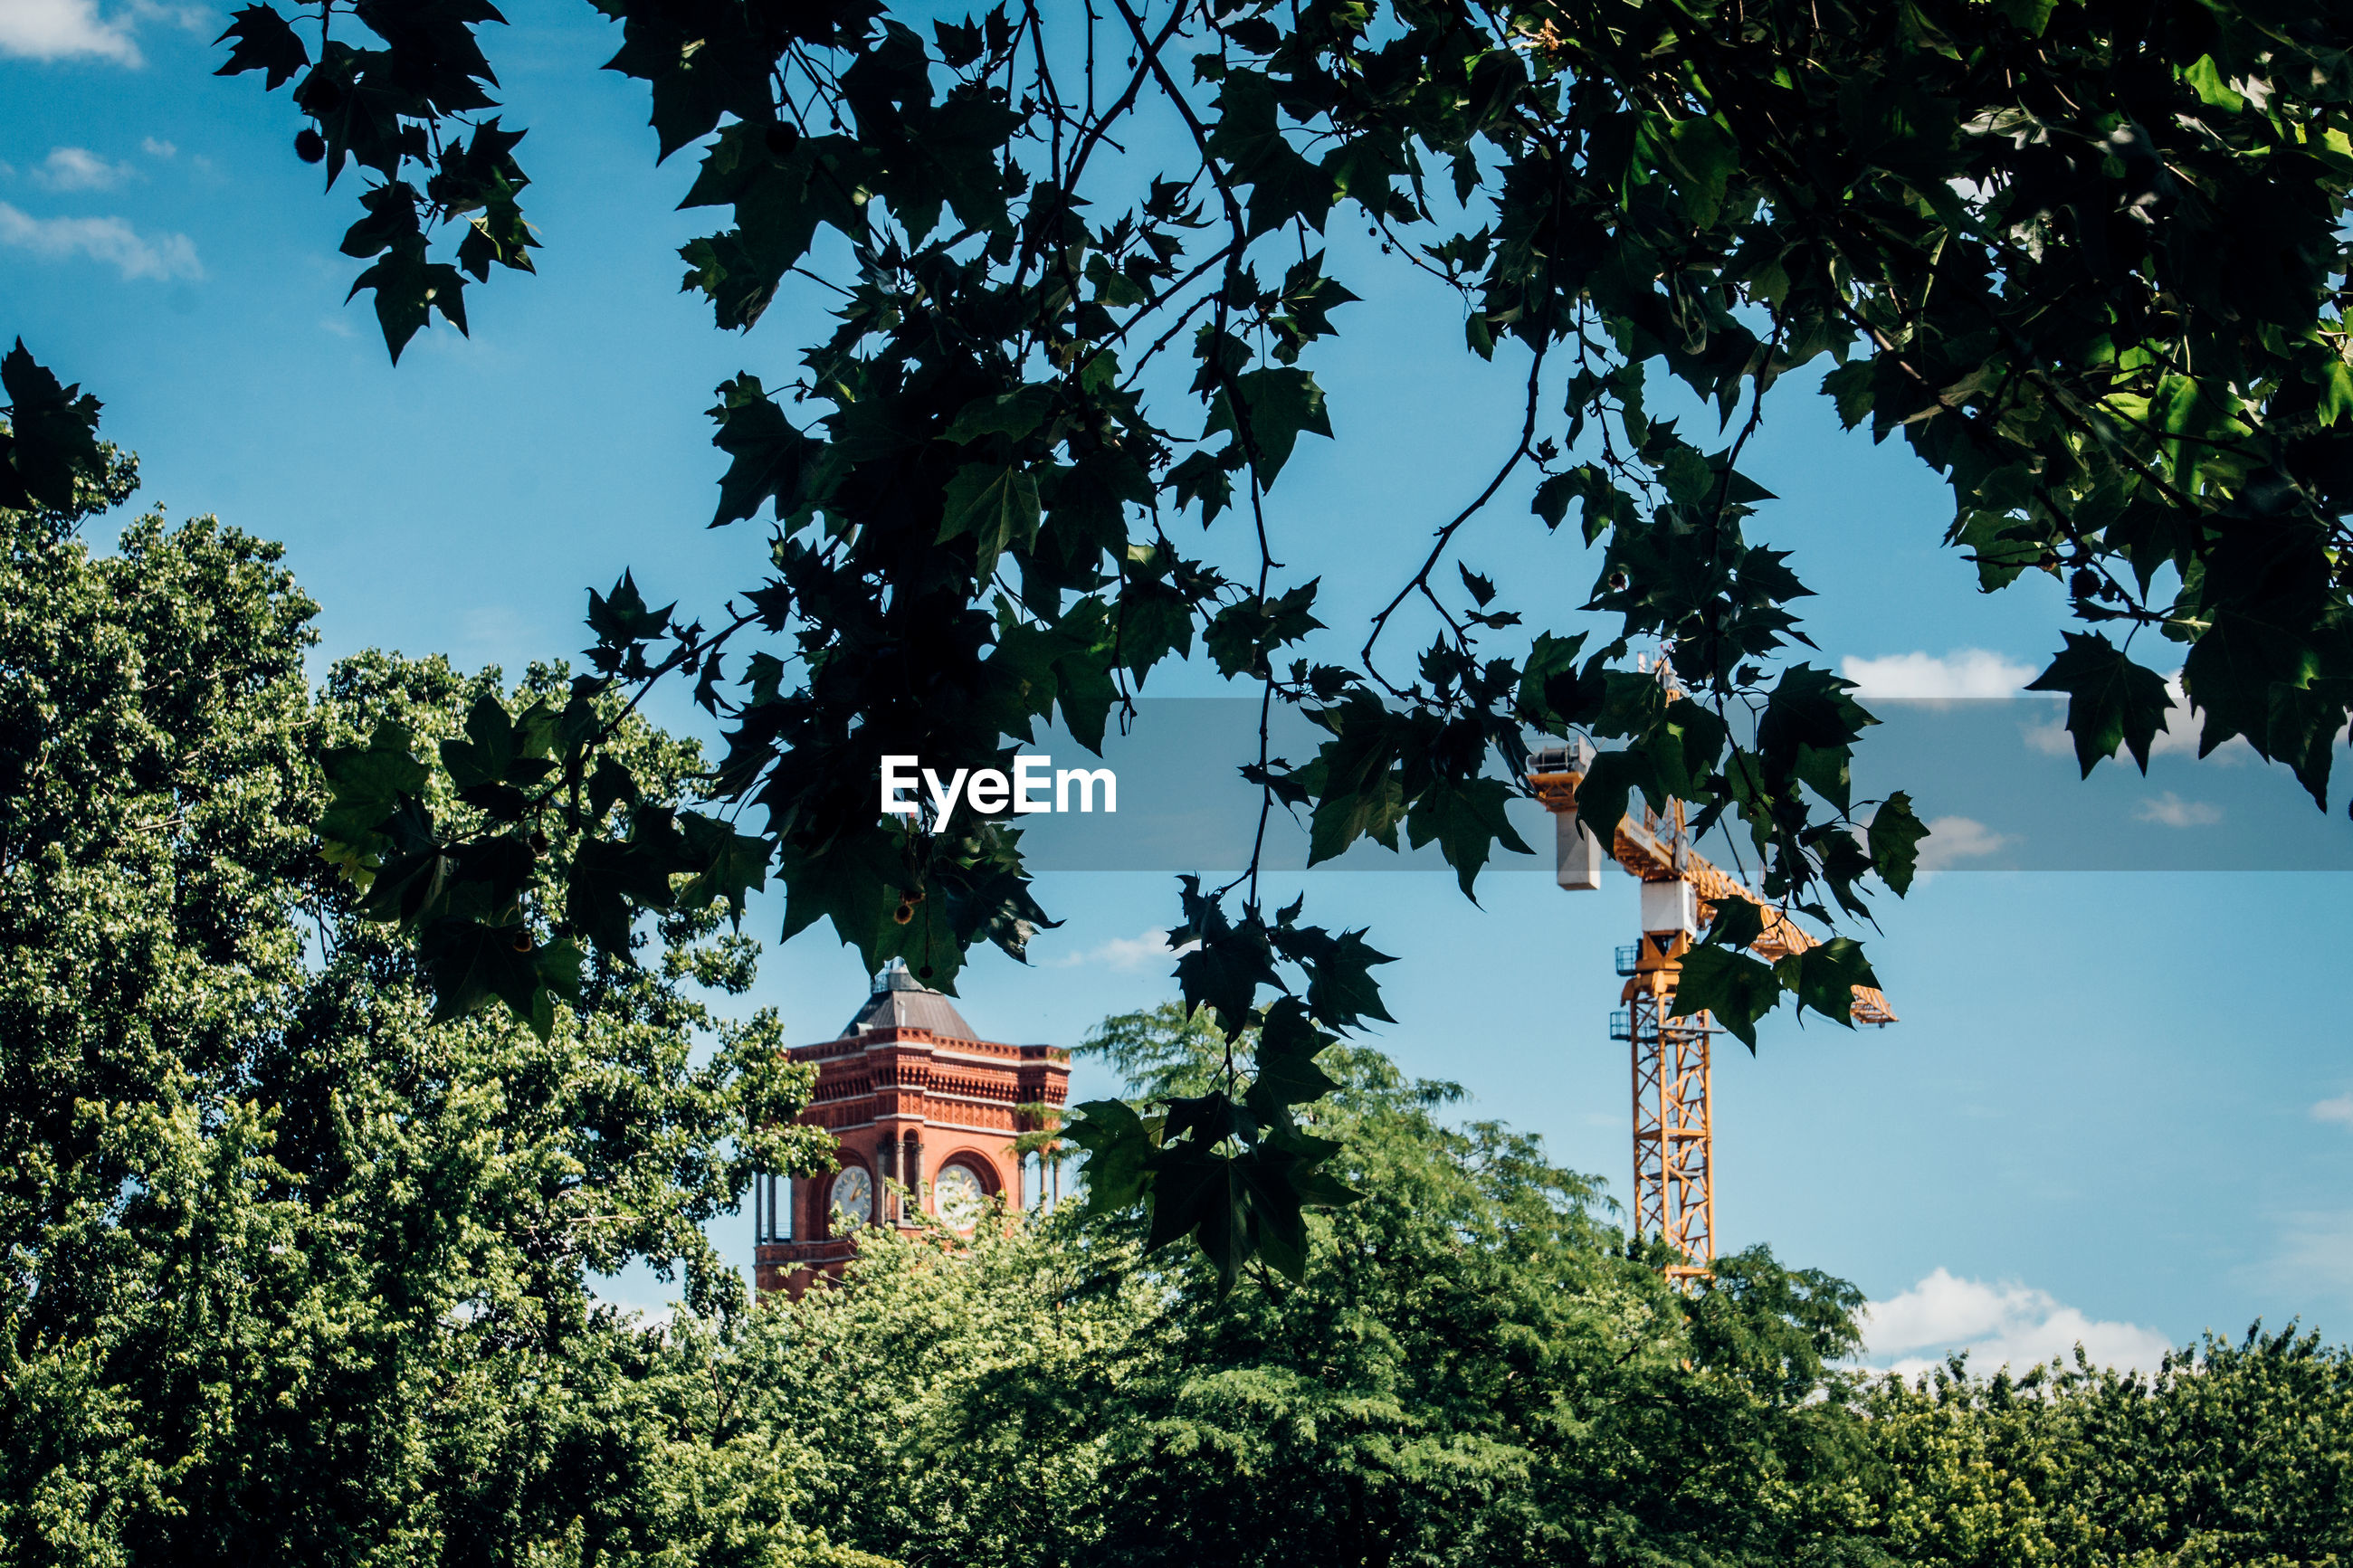 Low angle view of crane and clock tower against sky seen through trees